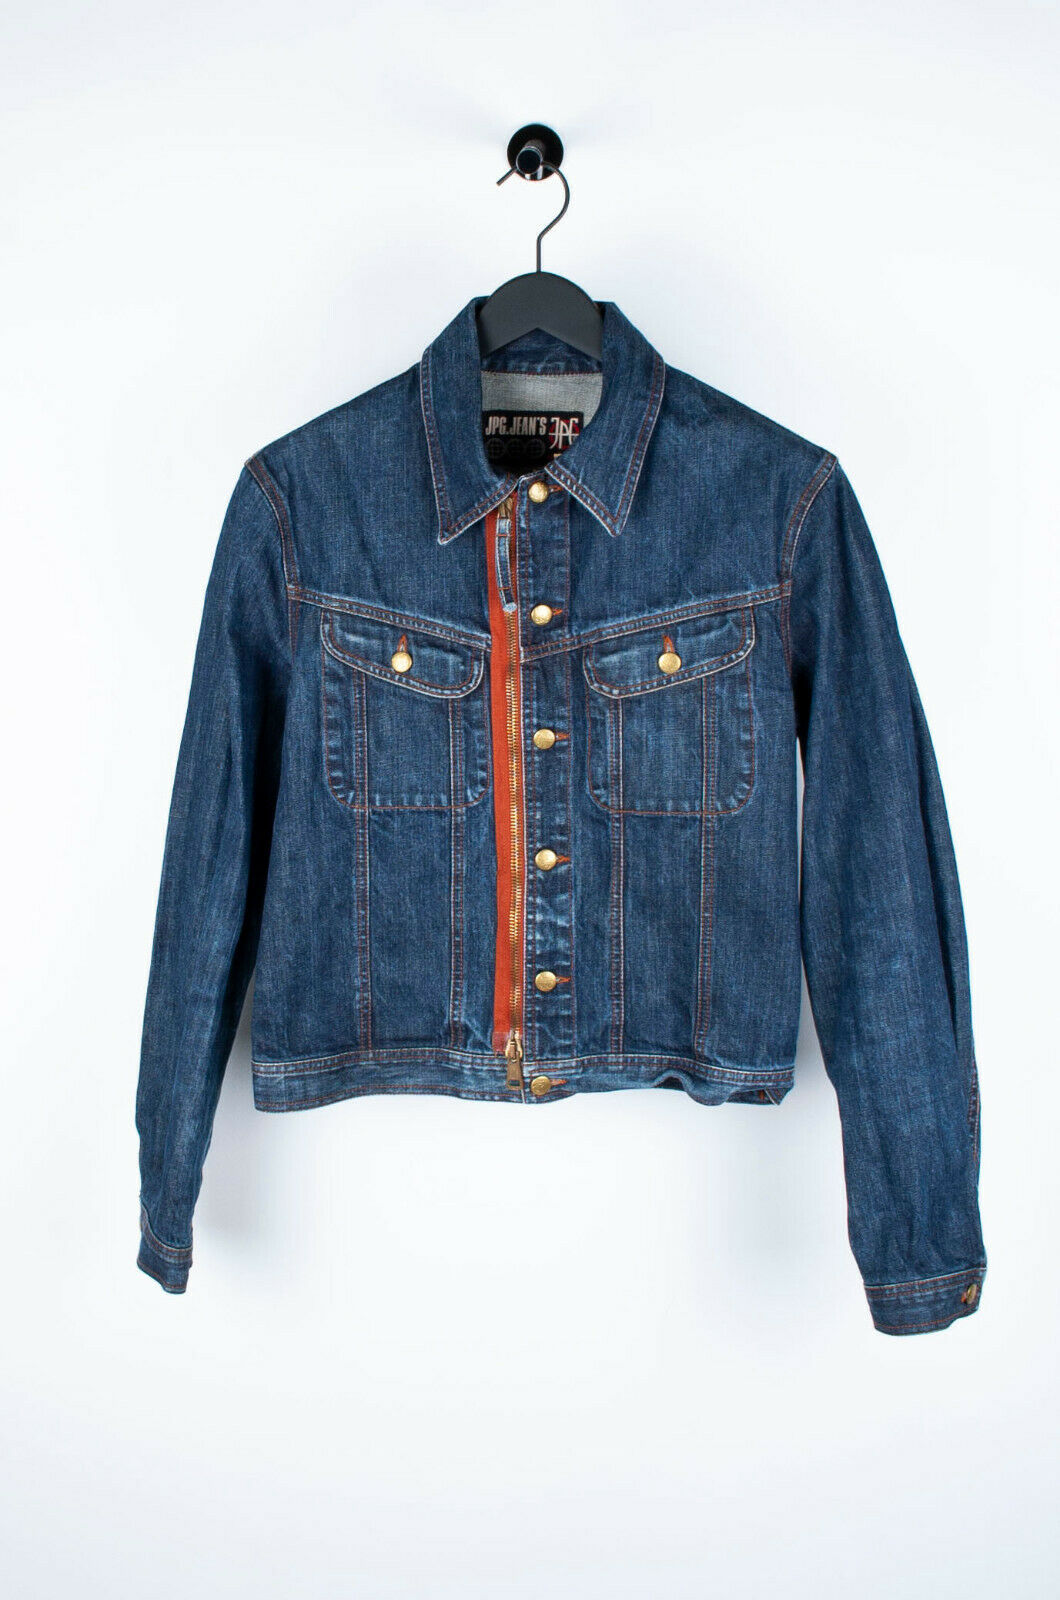 Original Jean Paul Gaultier Blau männer Zipped Denim jacke in Größe 50I 34USA